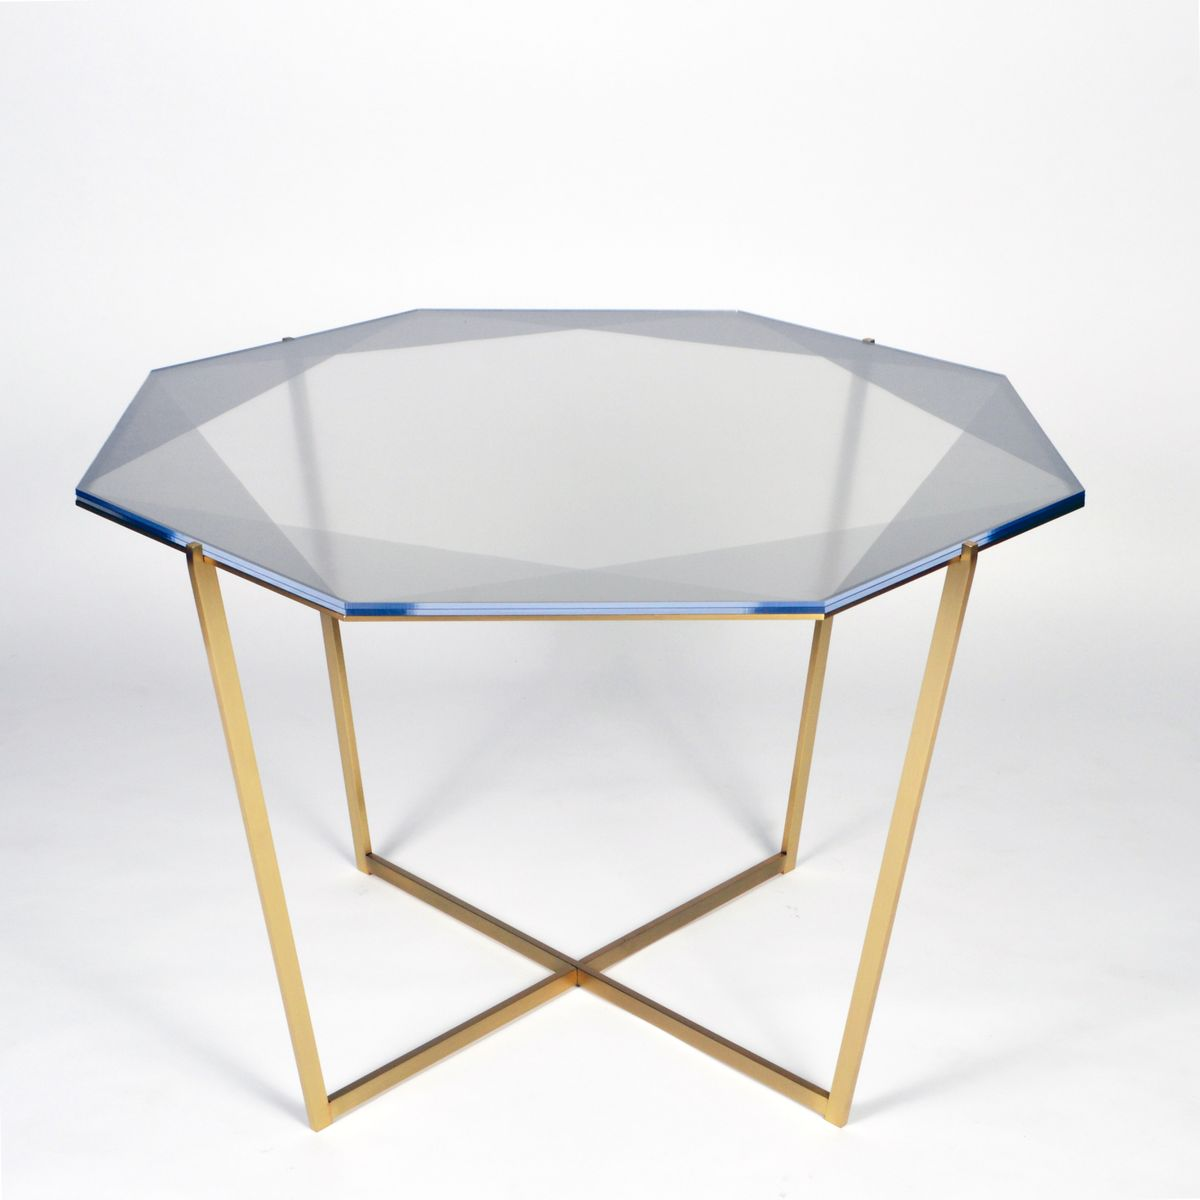 Octagonal Gem Dining Table by Debra Folz Design for sale  : octagonal gem dining table by debra folz design 3 from www.pamono.co.uk size 1200 x 1200 jpeg 45kB